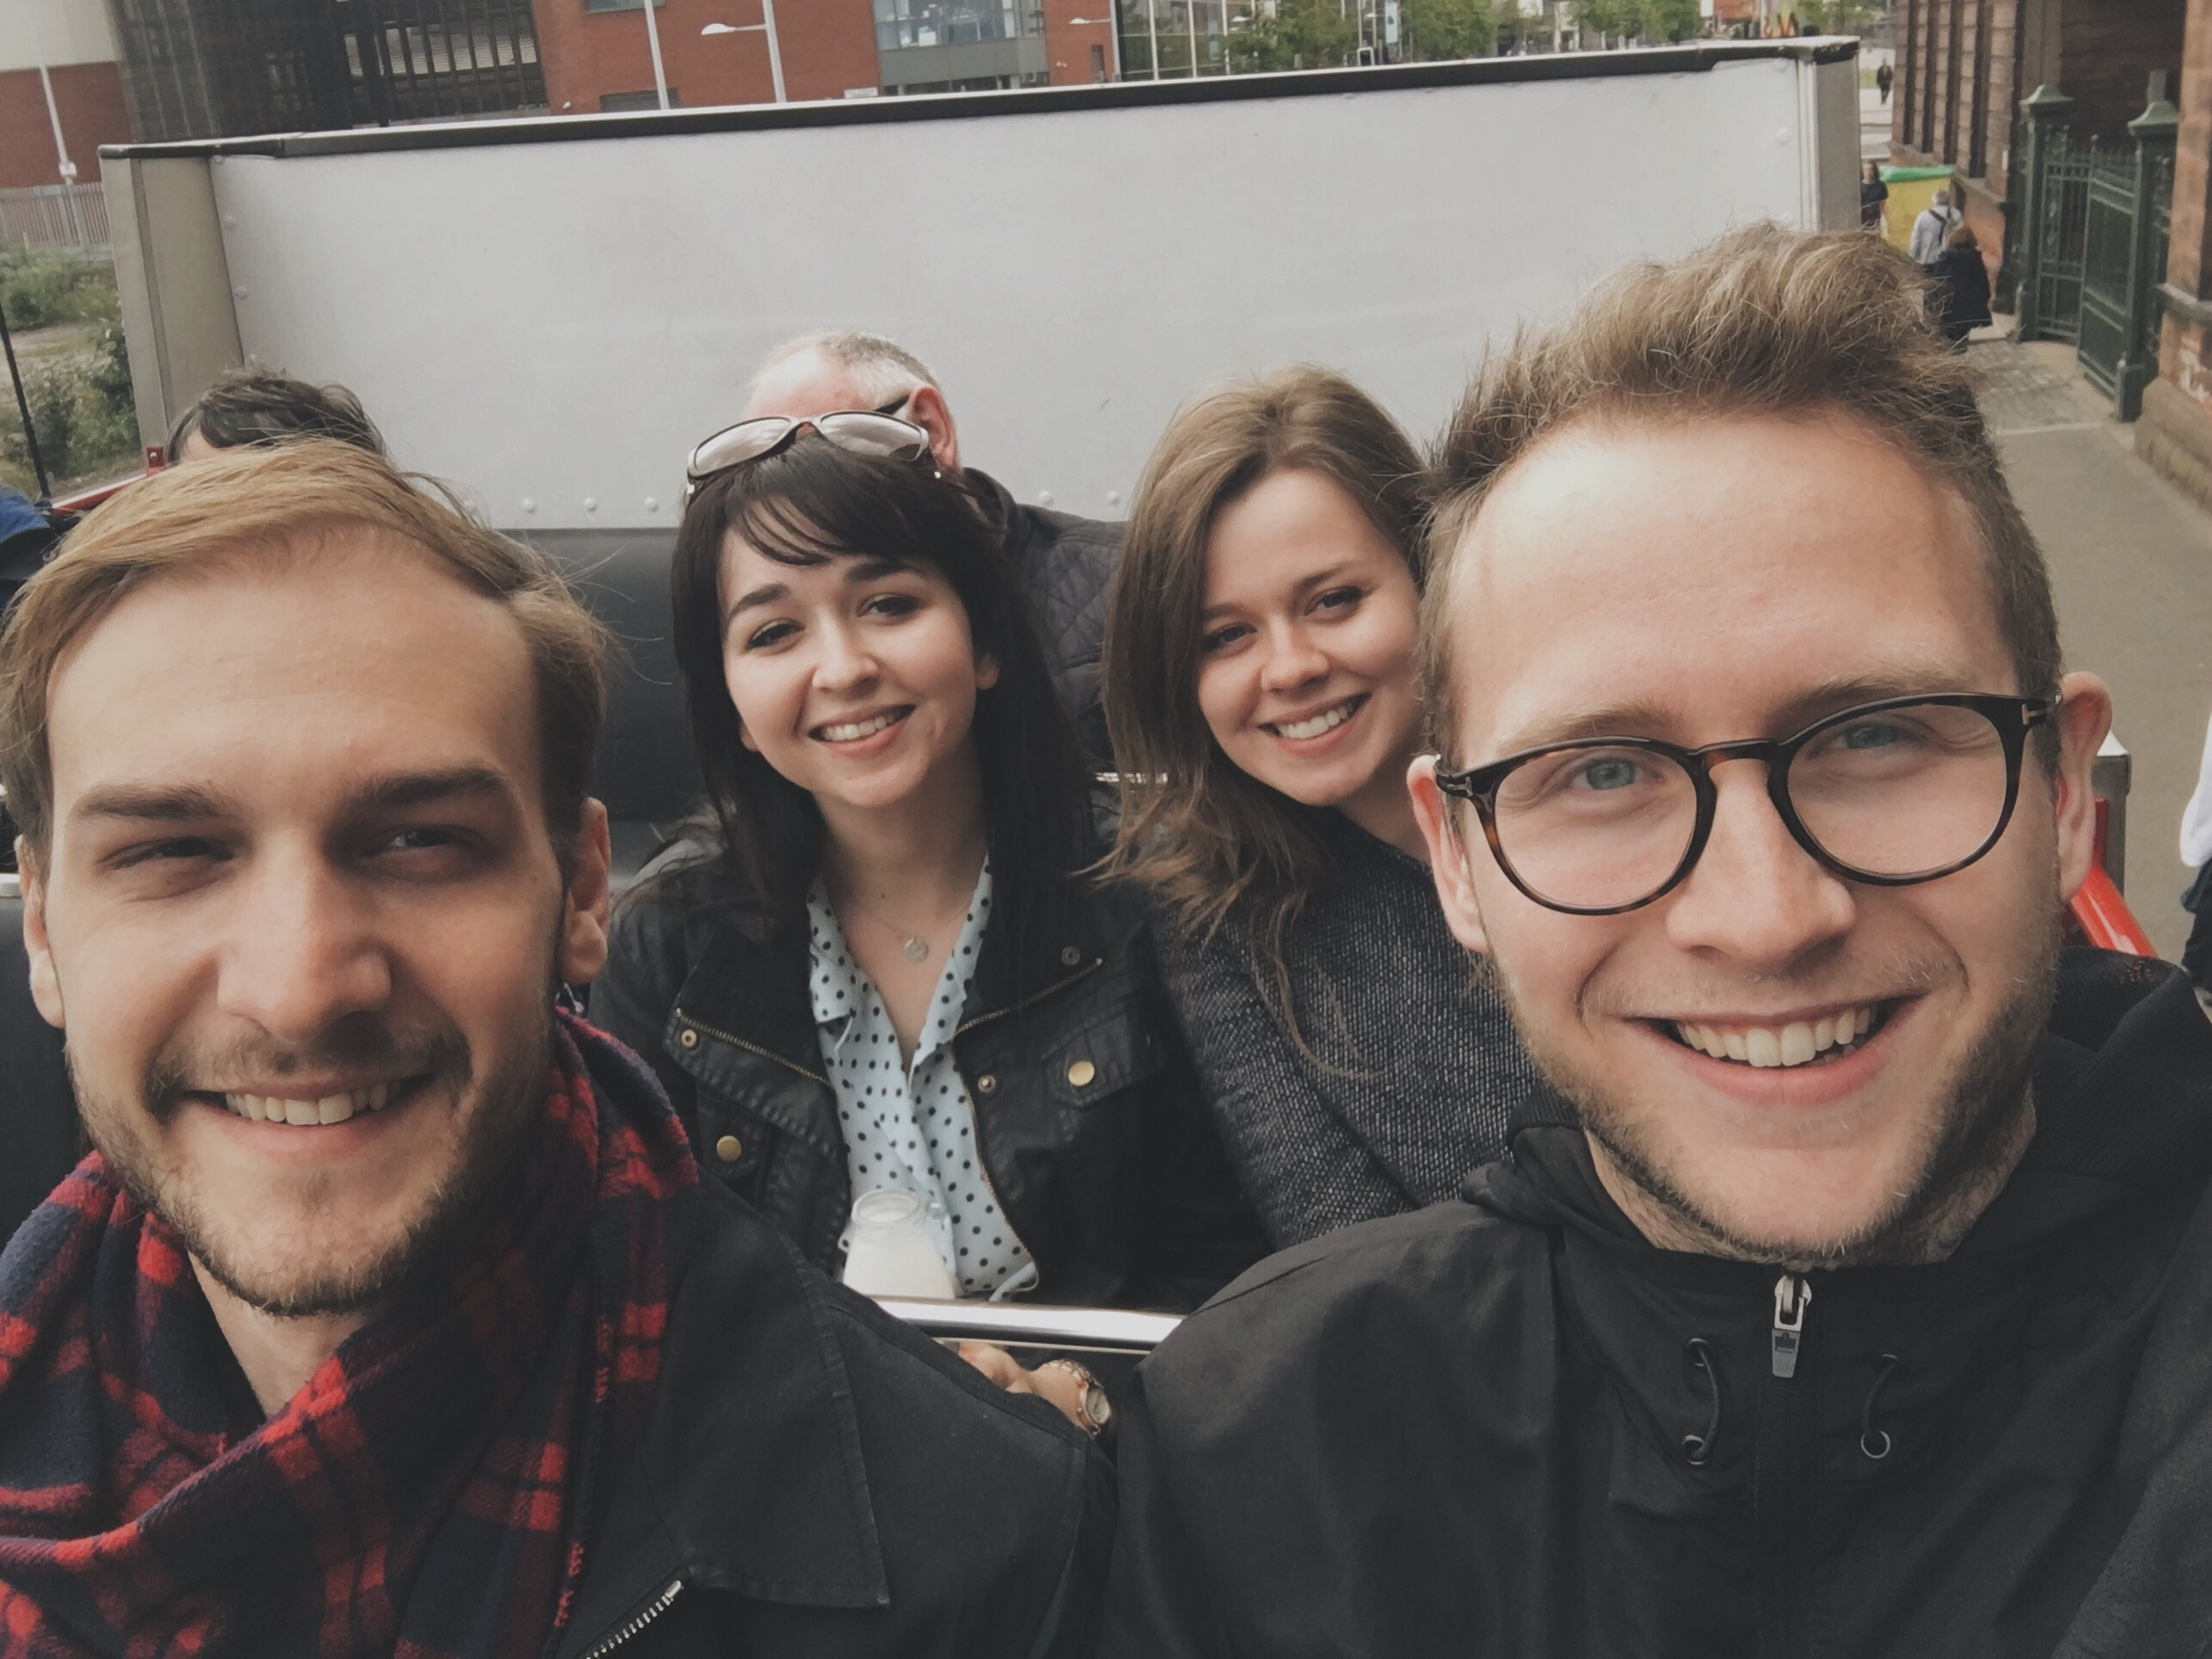 Being tourists in Belfast.